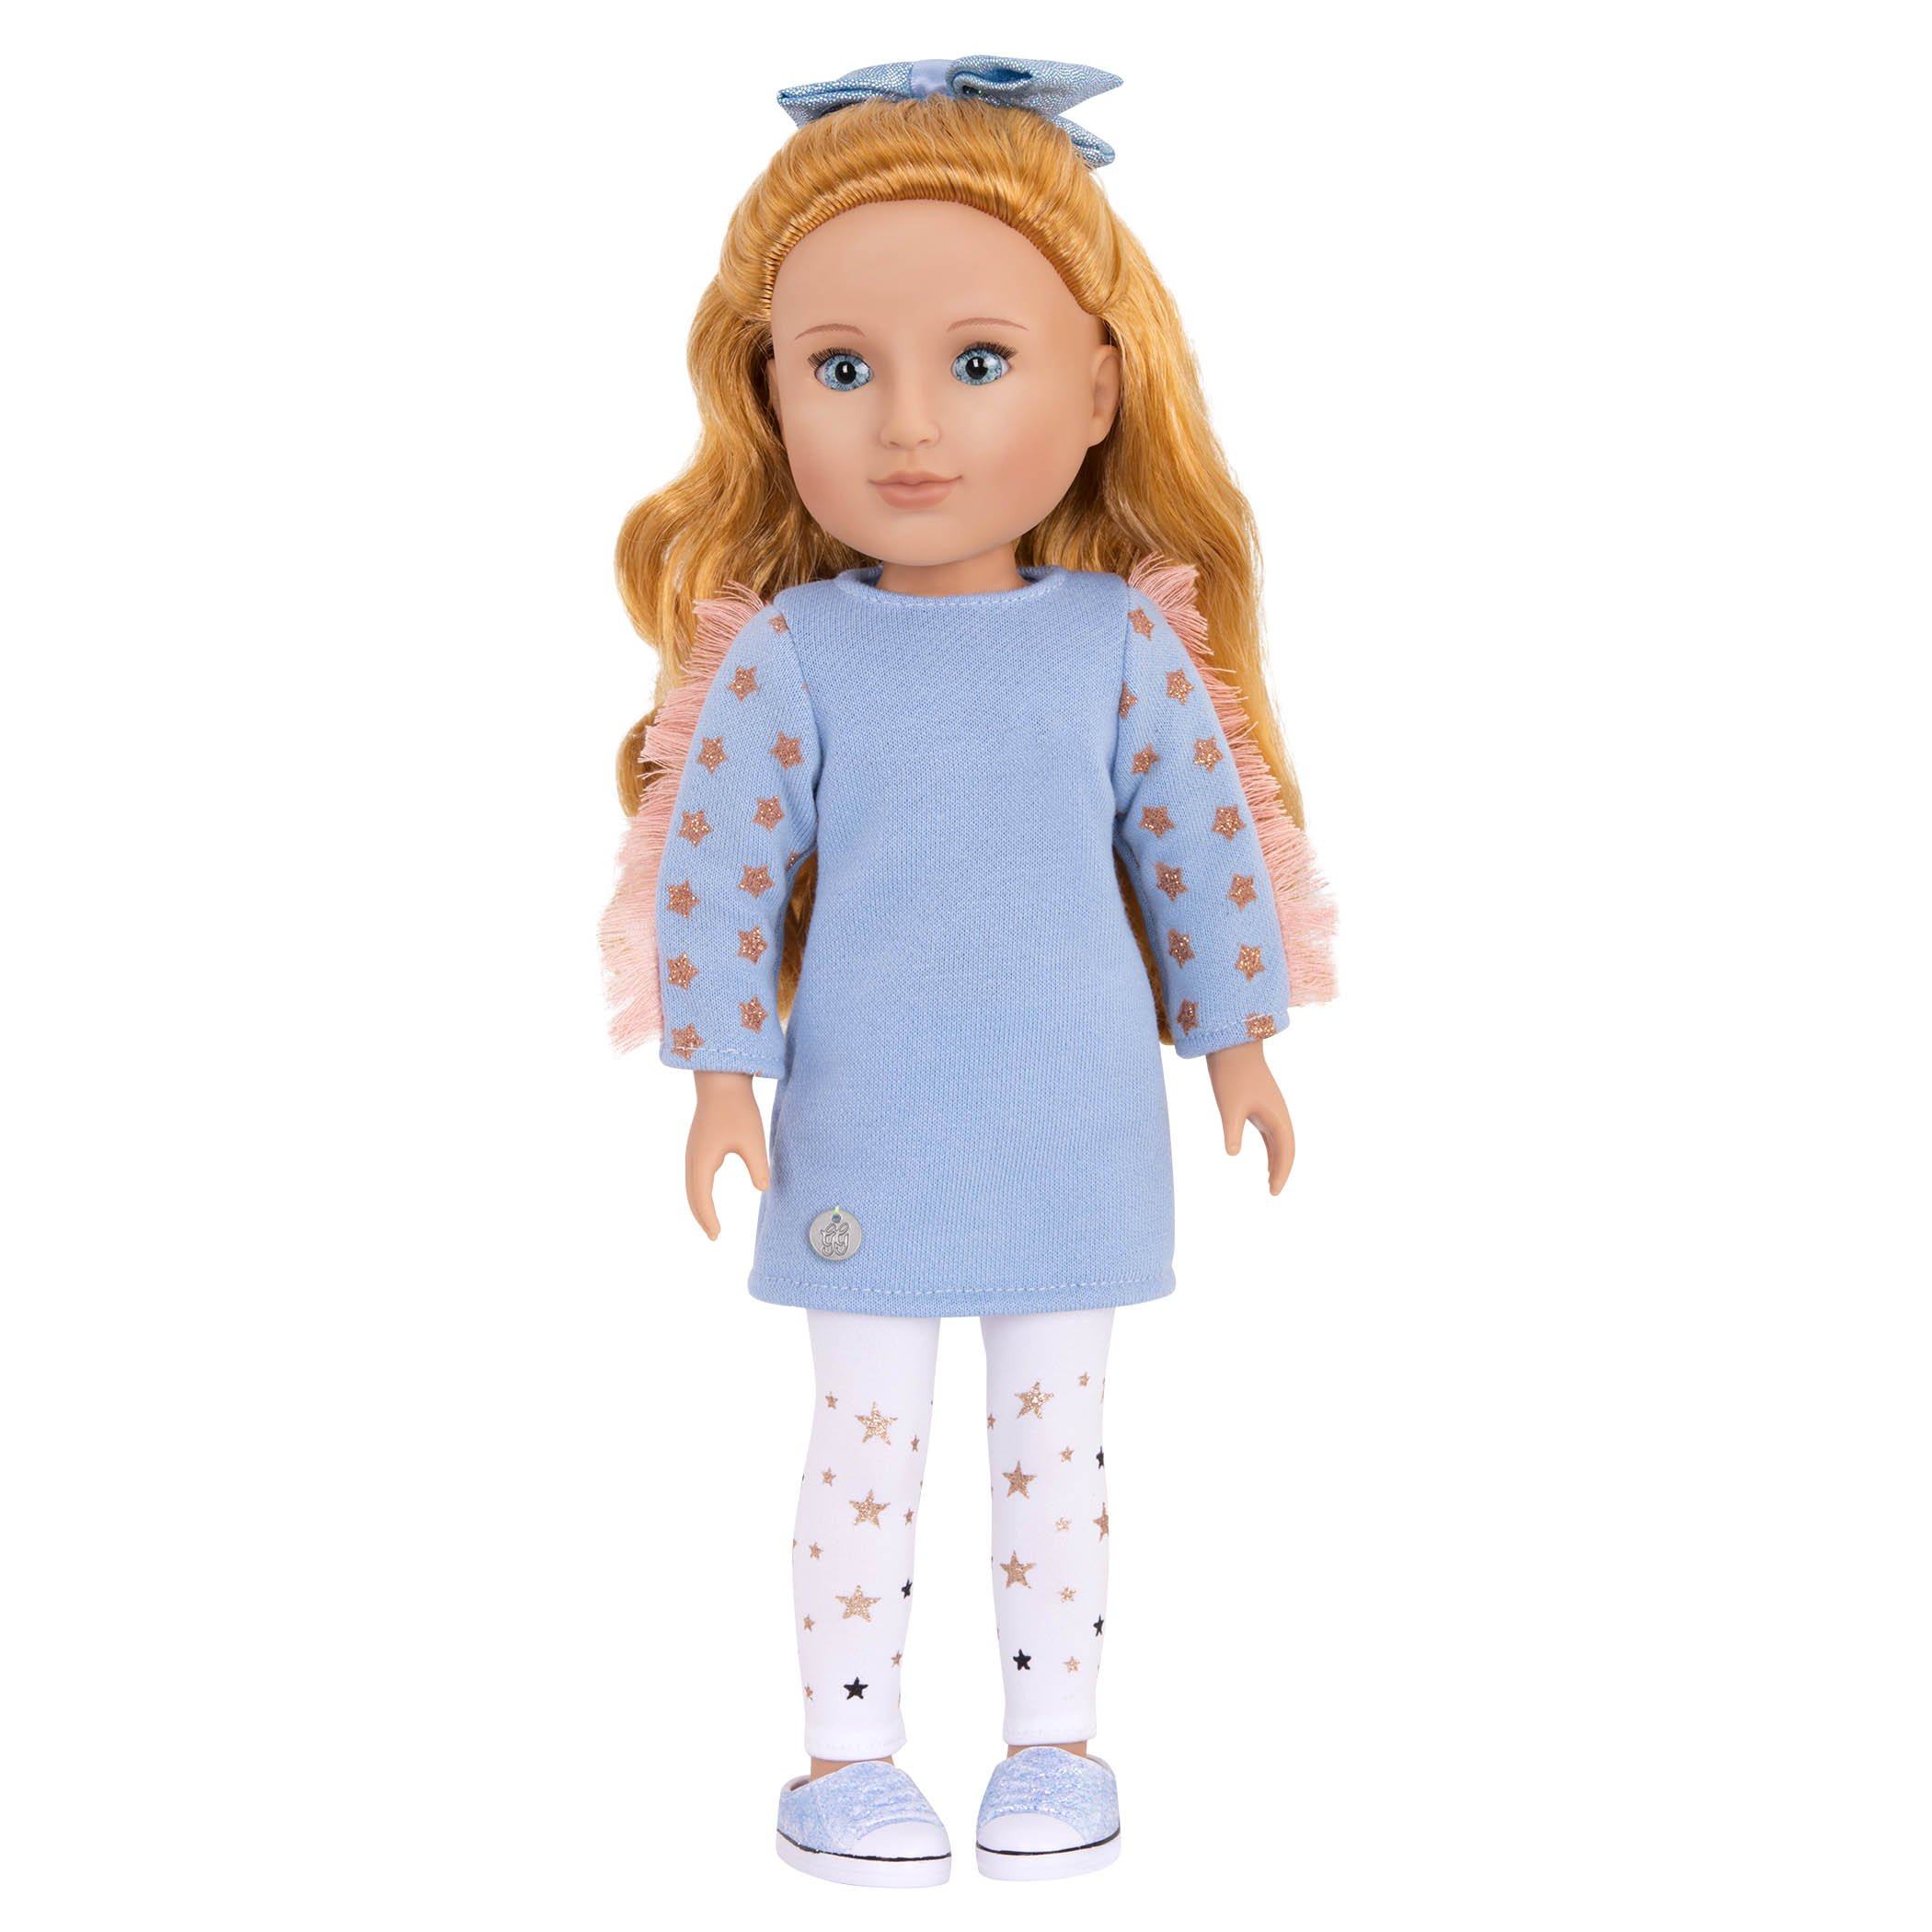 Glitter Girls by Battat - Poppy 14 inch Fashion Doll - Dolls for Girls Age 3 and Up - Doll, Clothing and Accessories - Childrens Toys